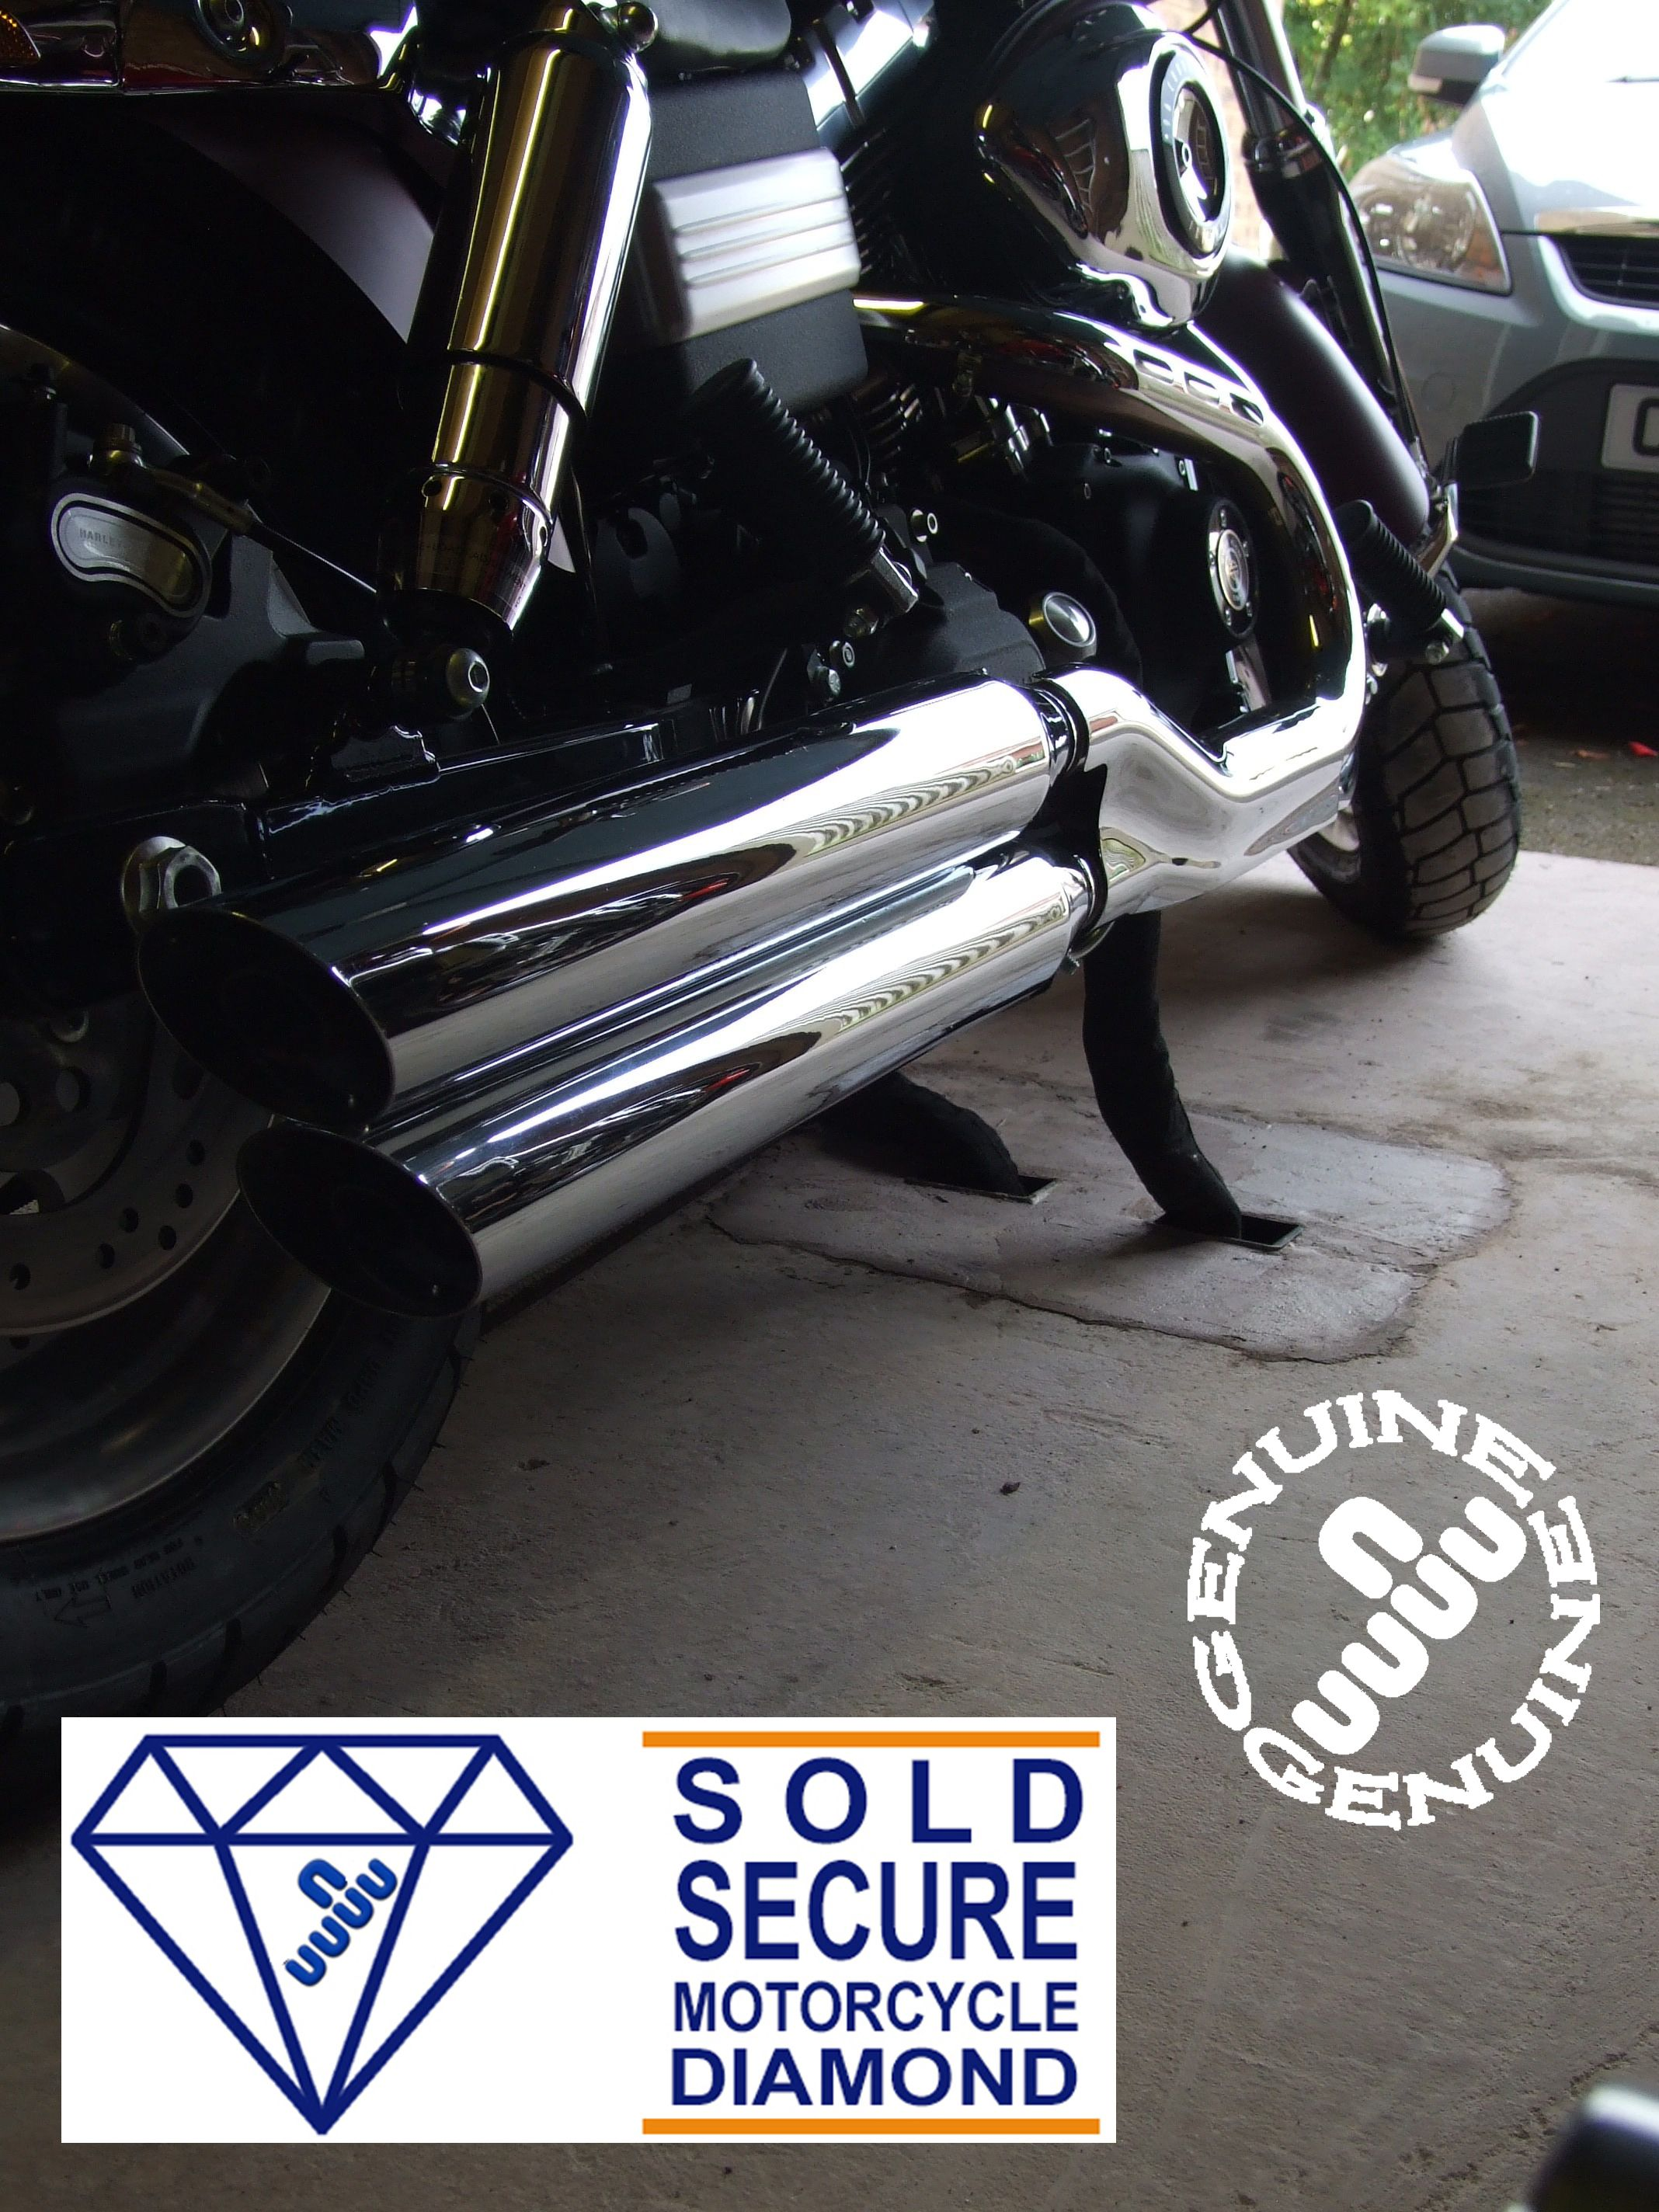 Motorbike Anchor Discounts On Motorcycle Insurance Premiums Are